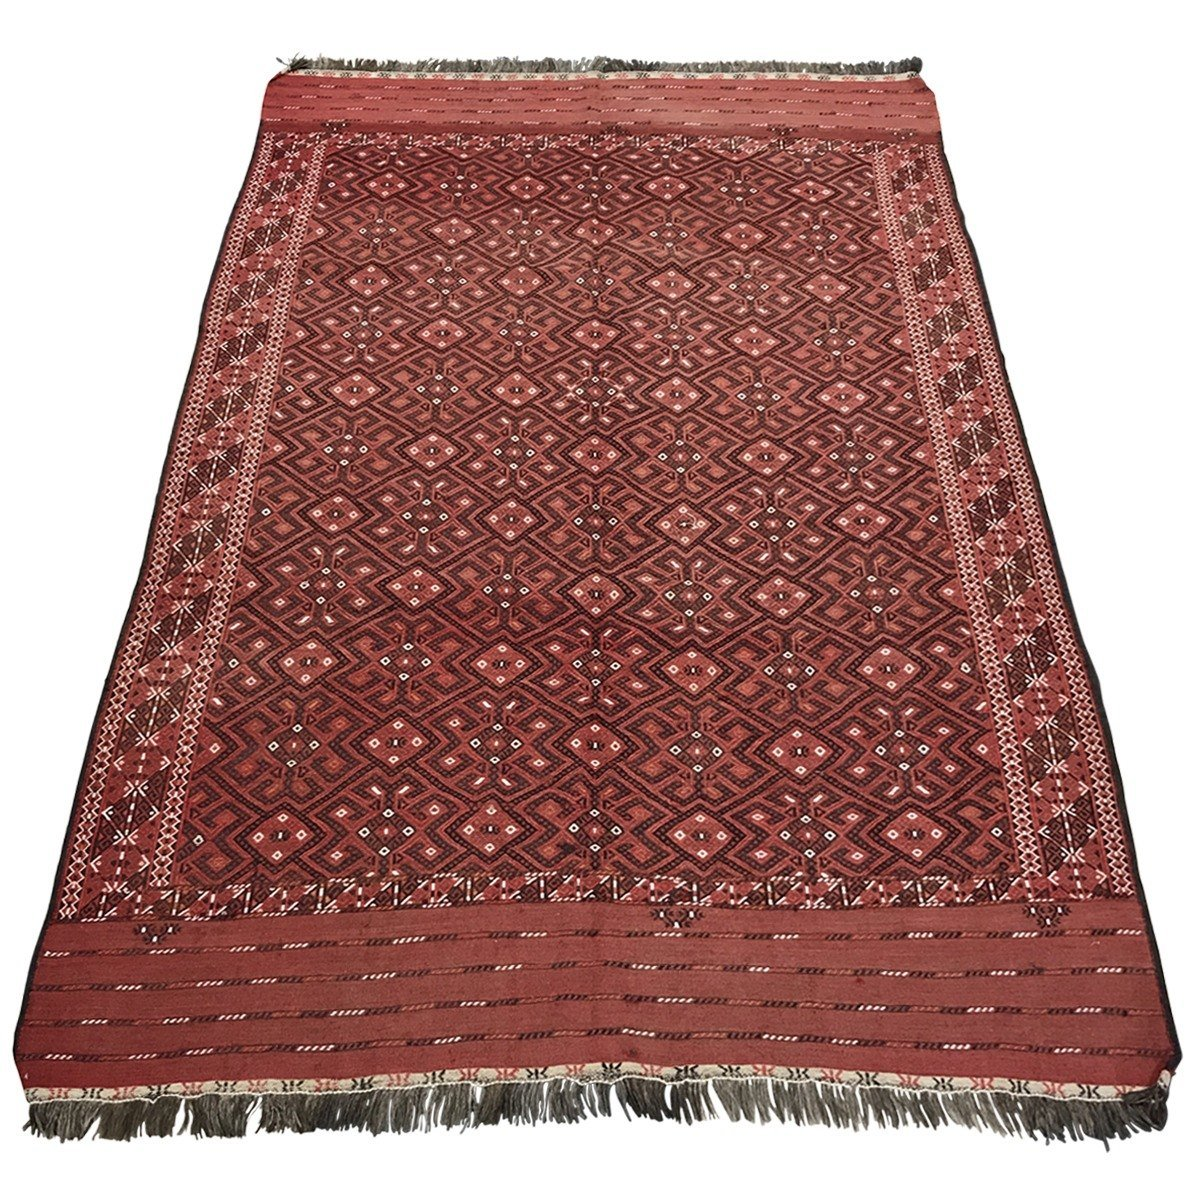 "Woven Concepts 1900 Persian Sumac Wool Rug 6'9"" X 10'2"" - Woven Concepts Persian Rugs Product Image"